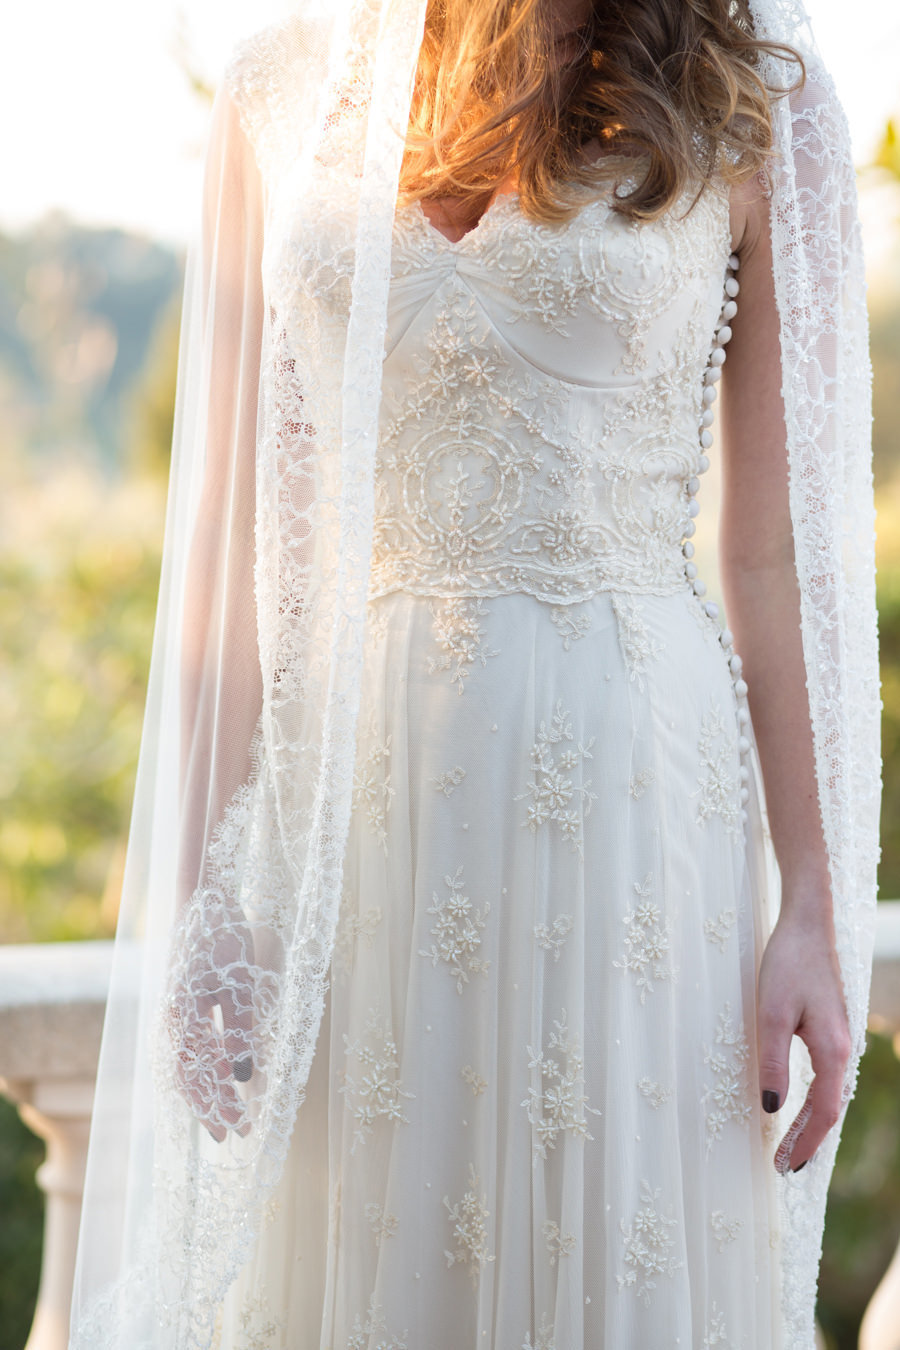 Artemis_champagne_beaded_lace_wedding_dress_veil_JoanneFlemingDesign_AveryLynnPhoto